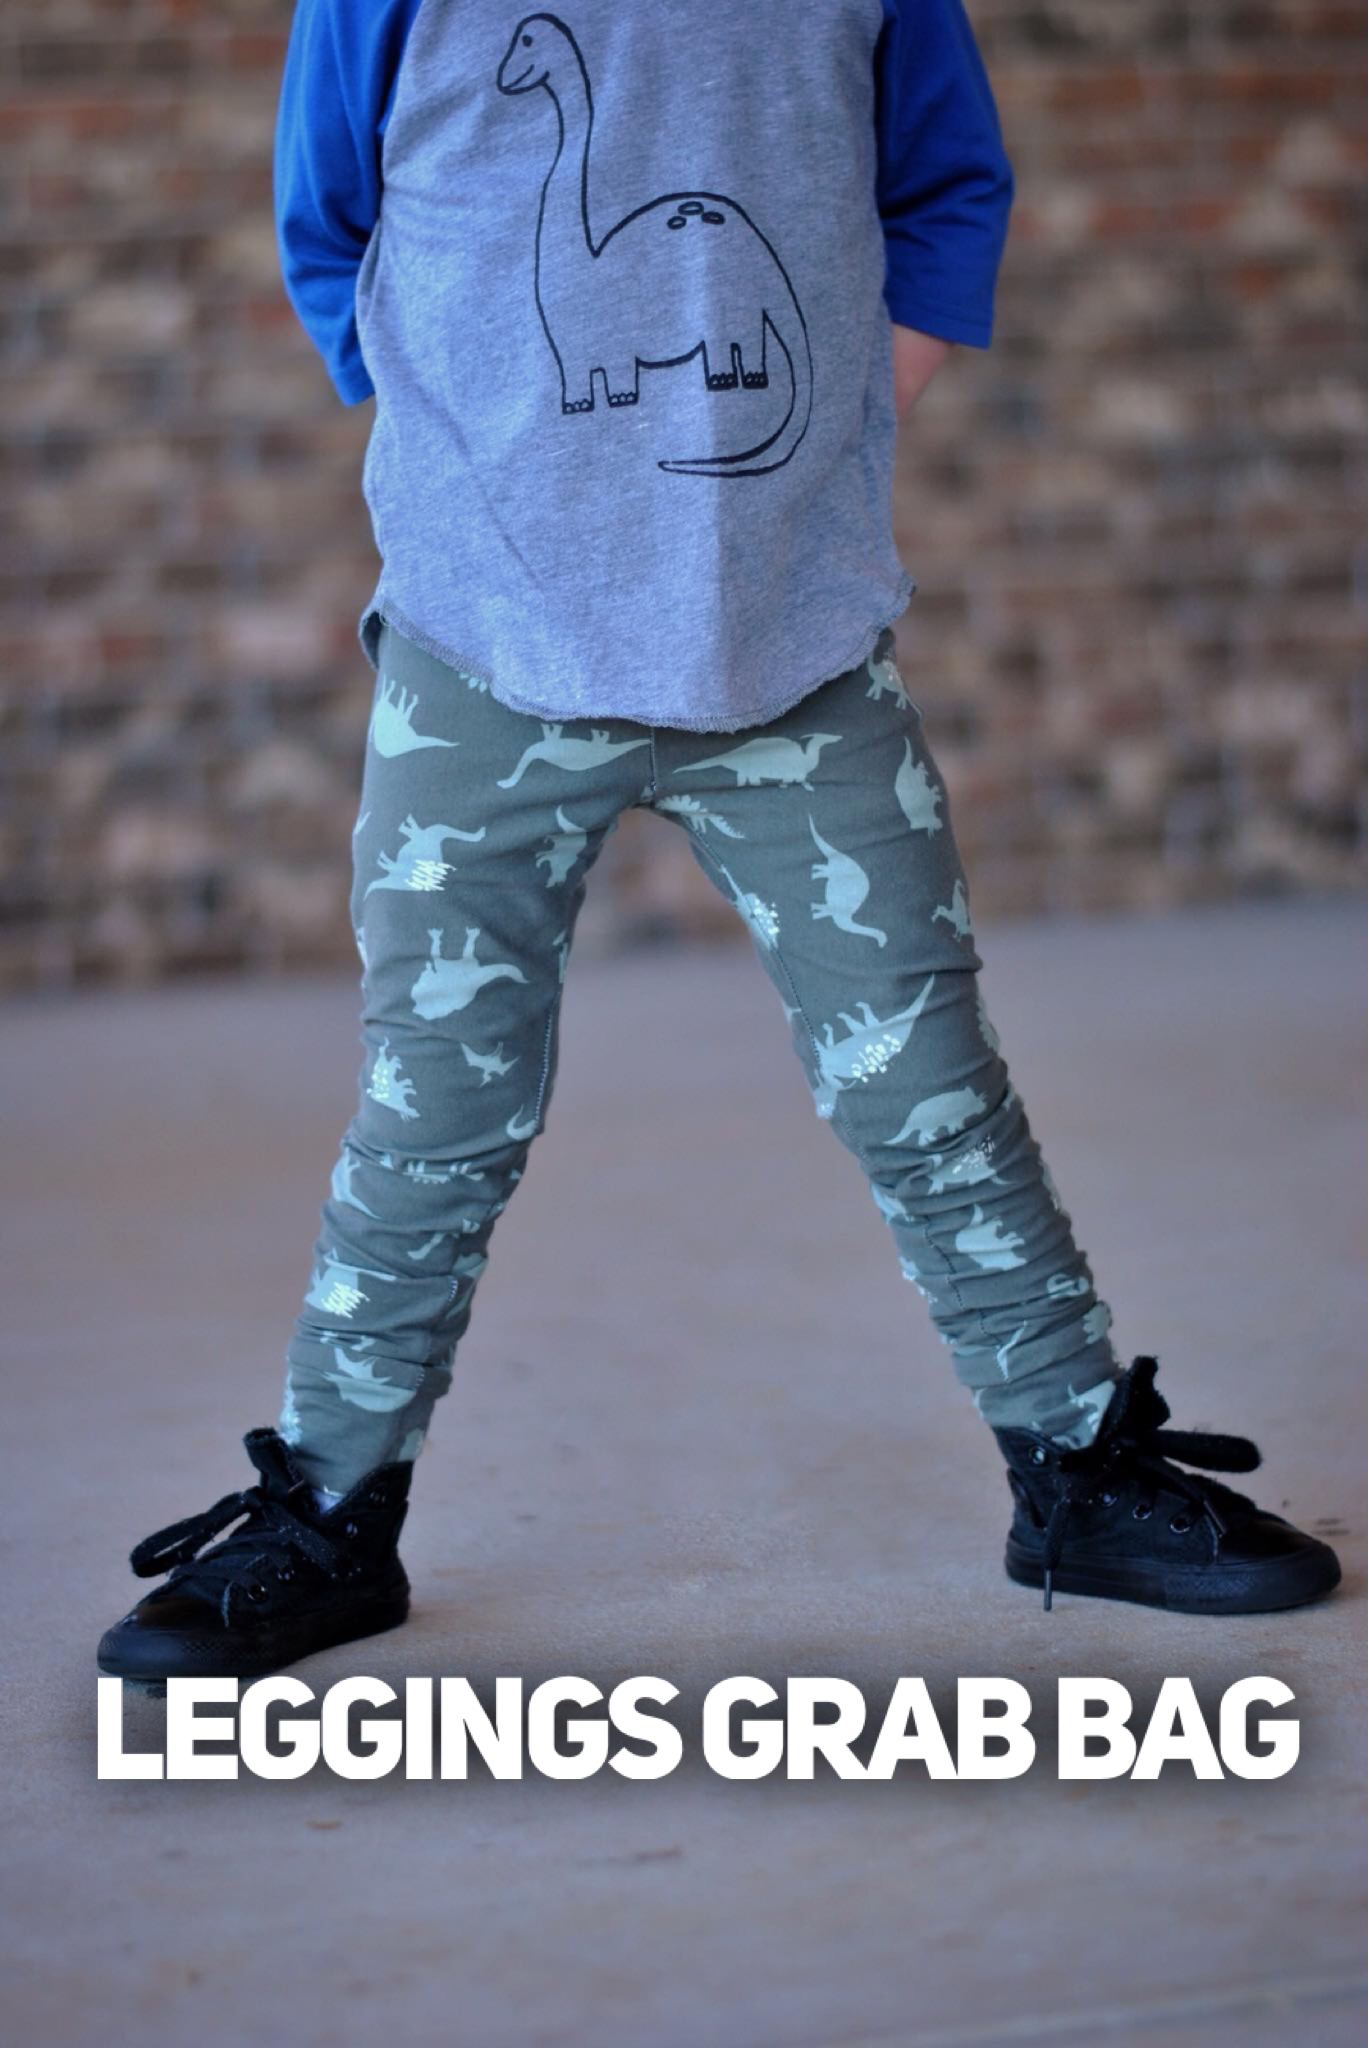 Legging Grab Bags